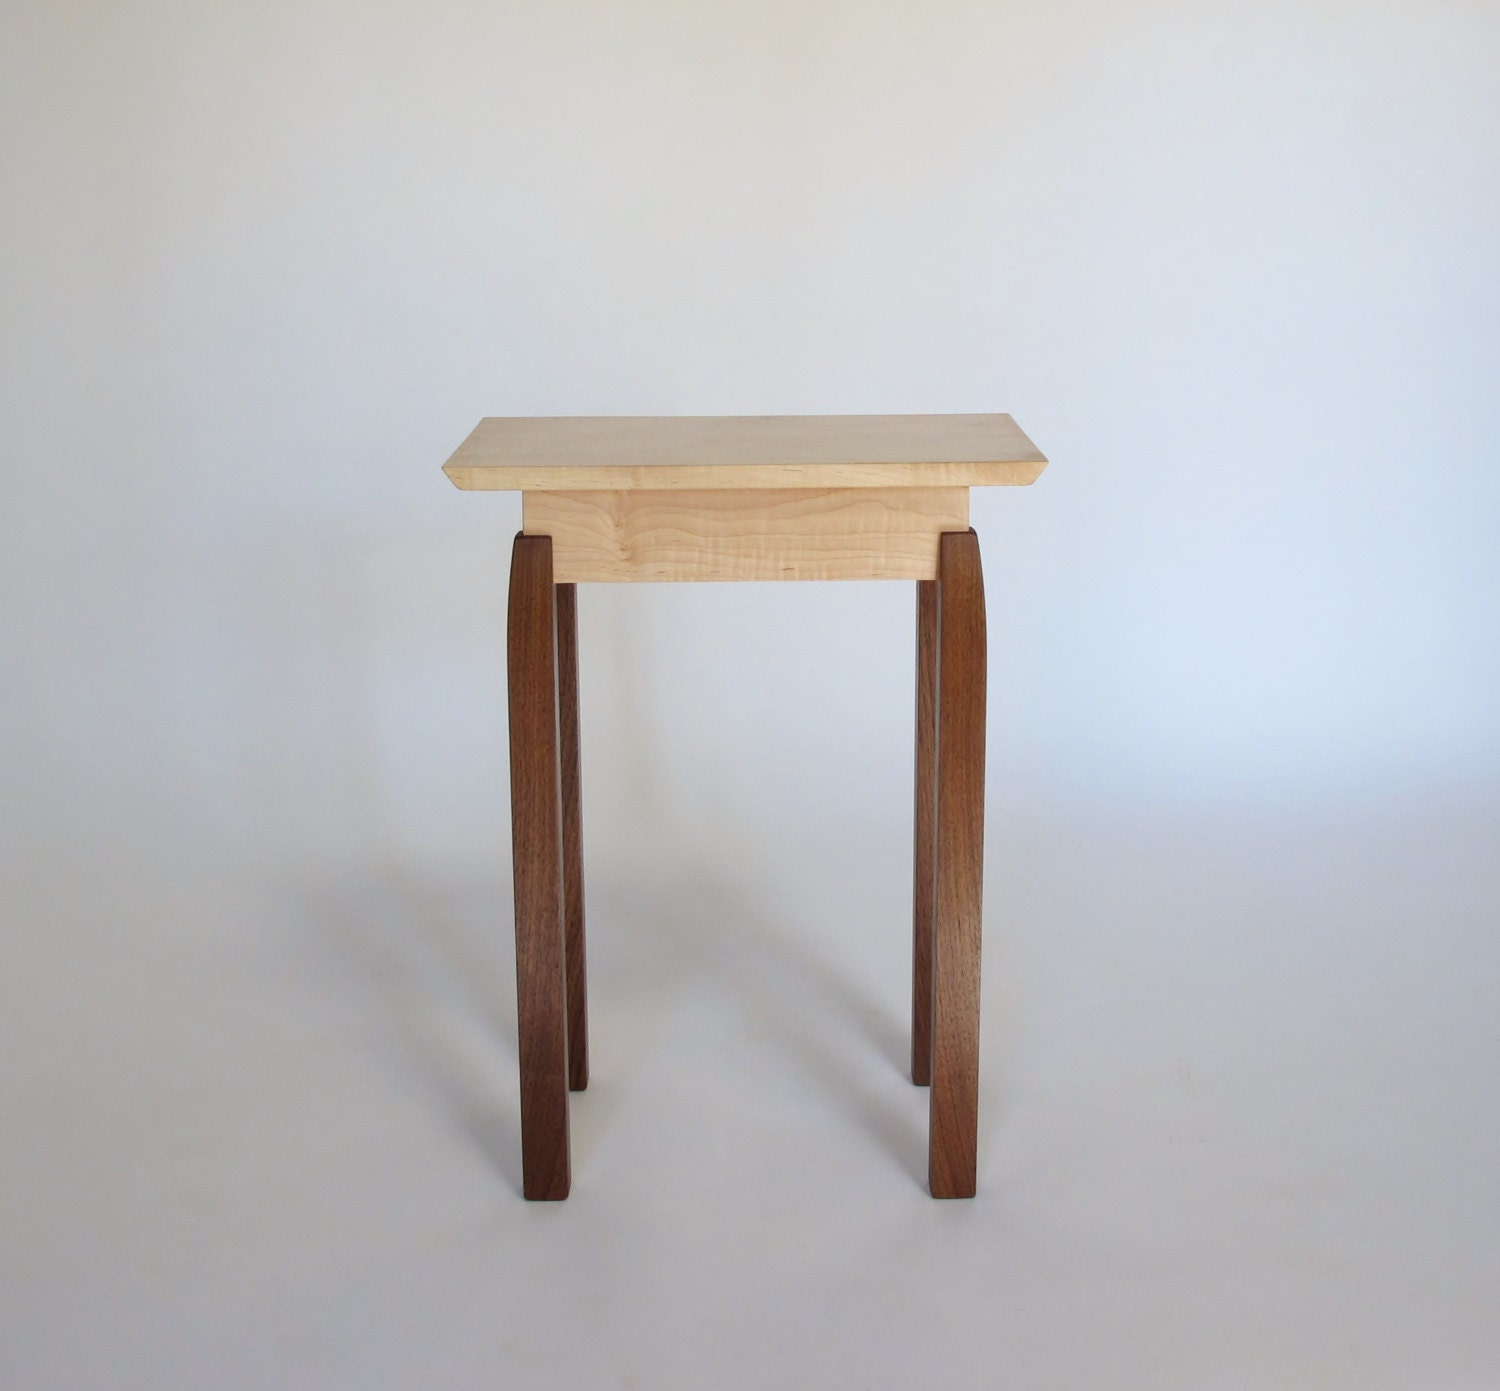 Narrow end table small wood table rectangular shape for Small wood end table